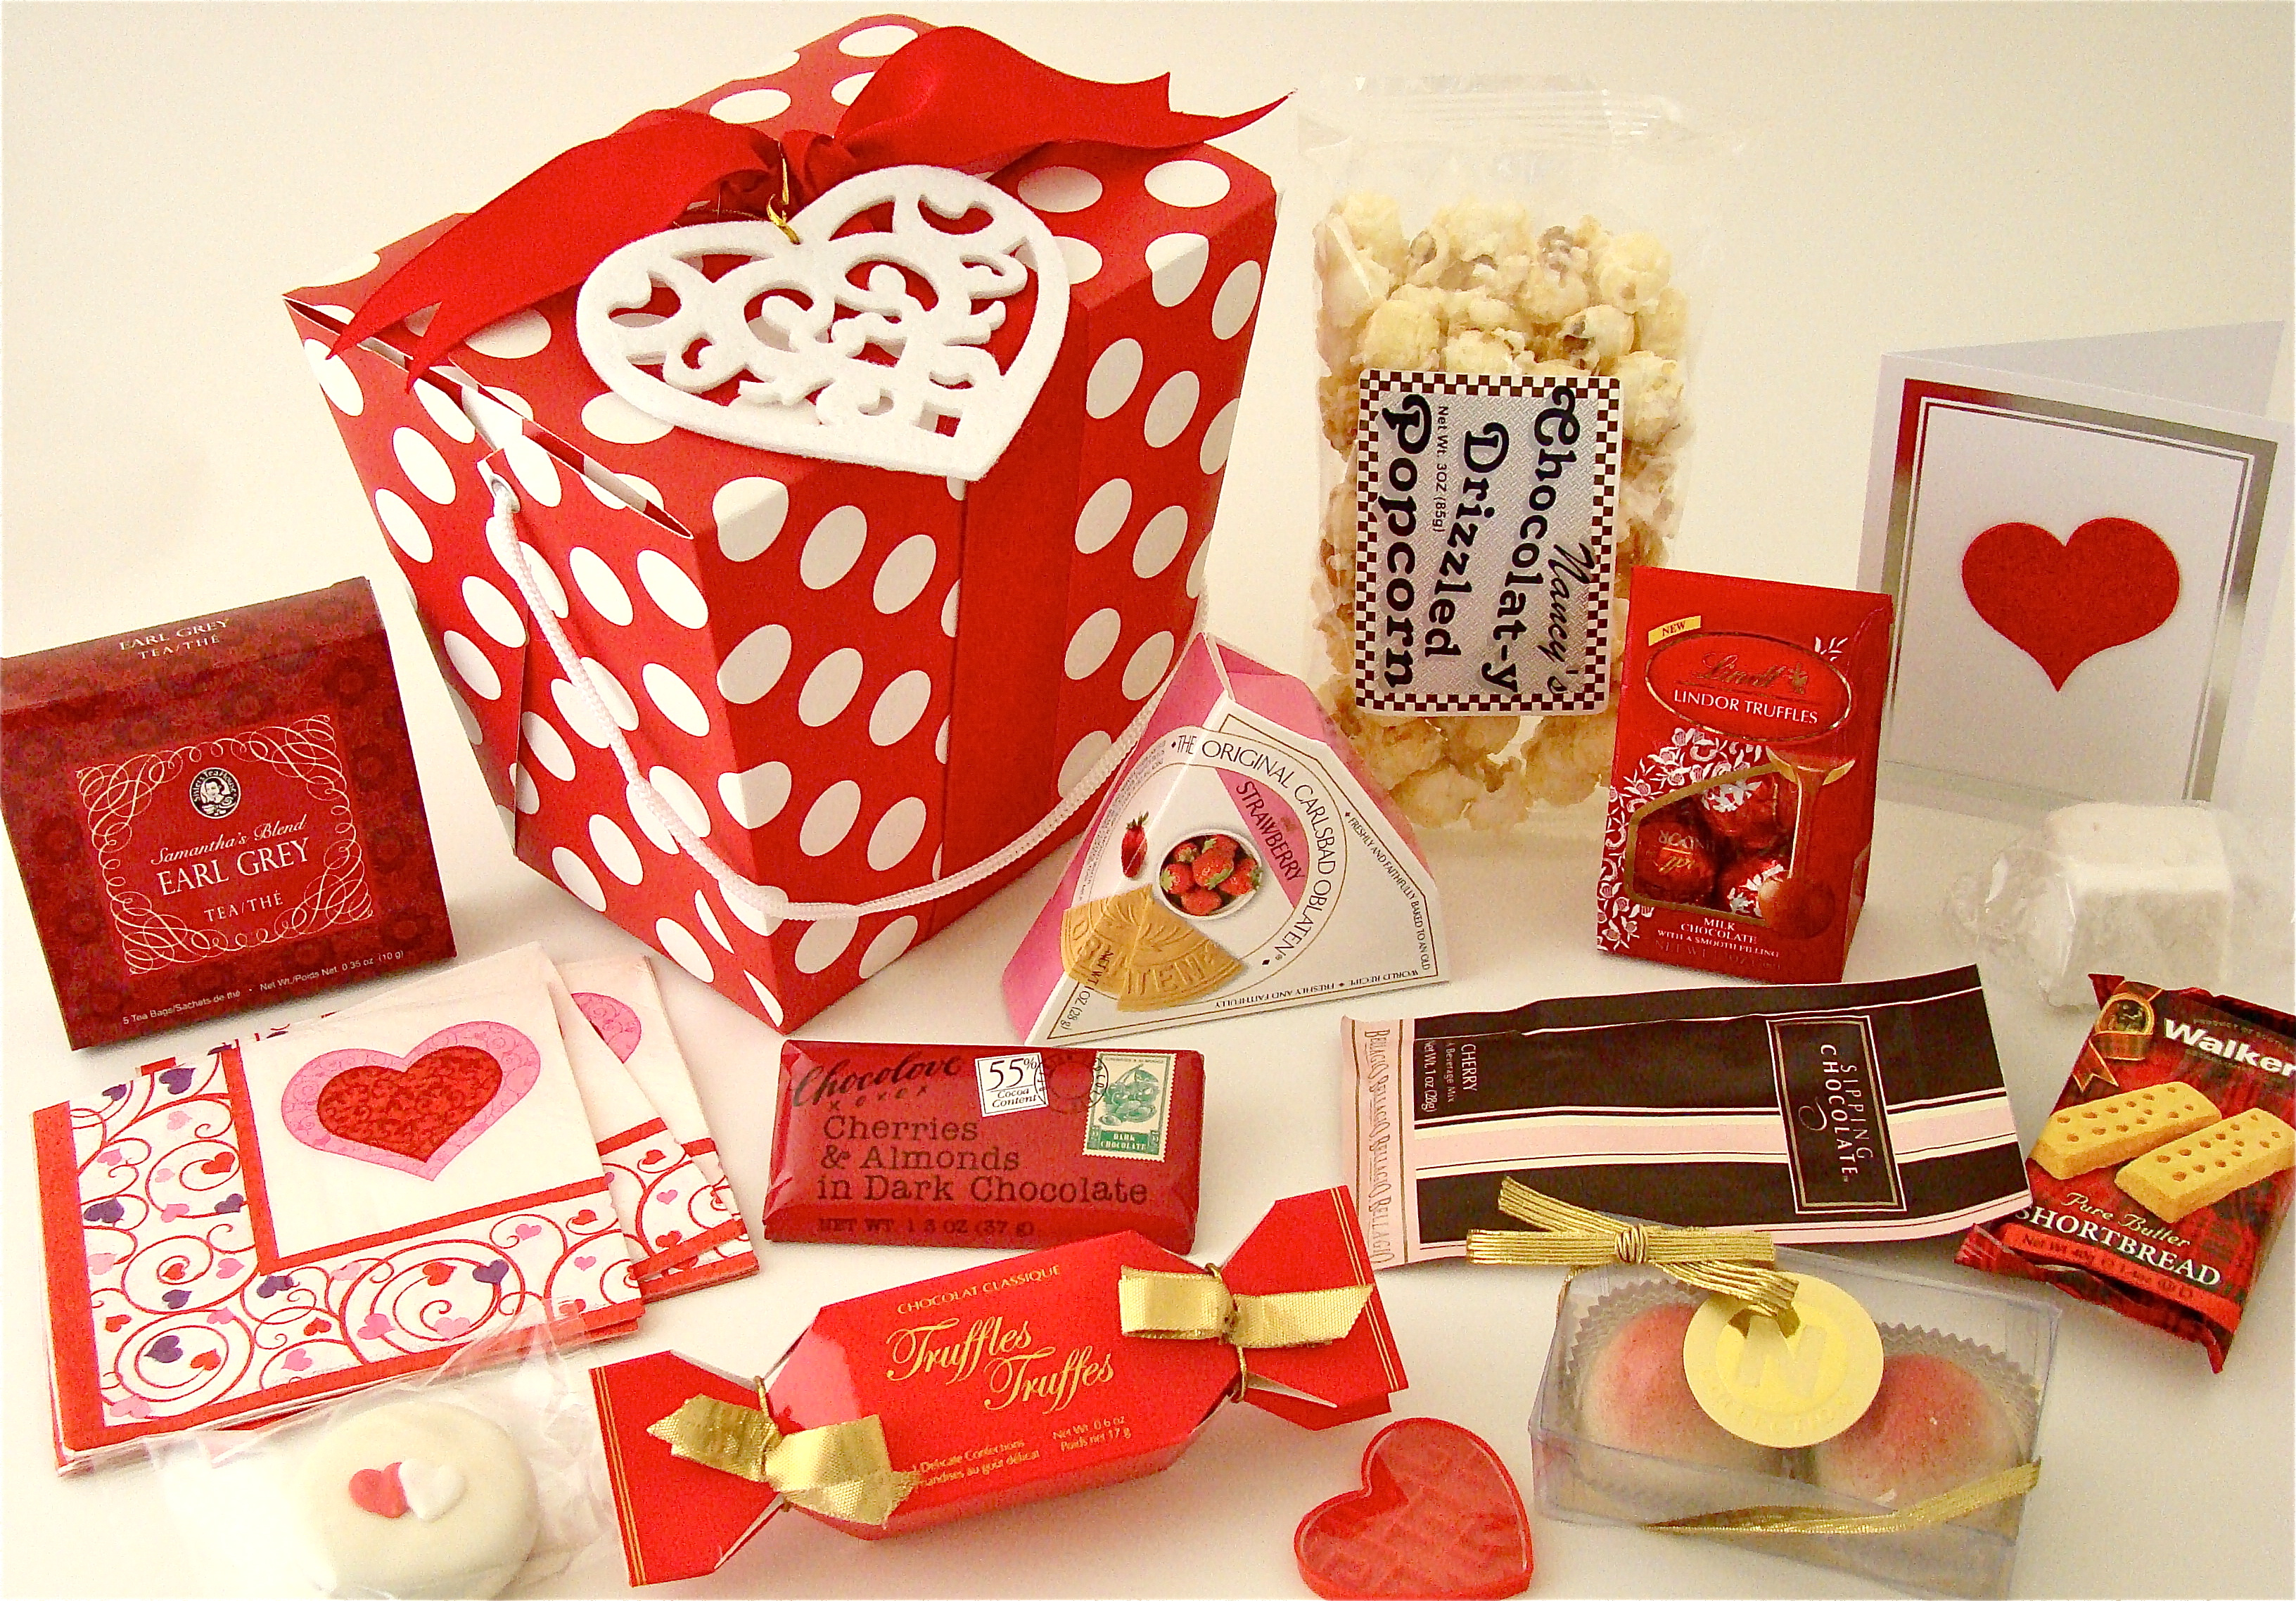 2 comments for valentines day peppermint popcorn gift bags